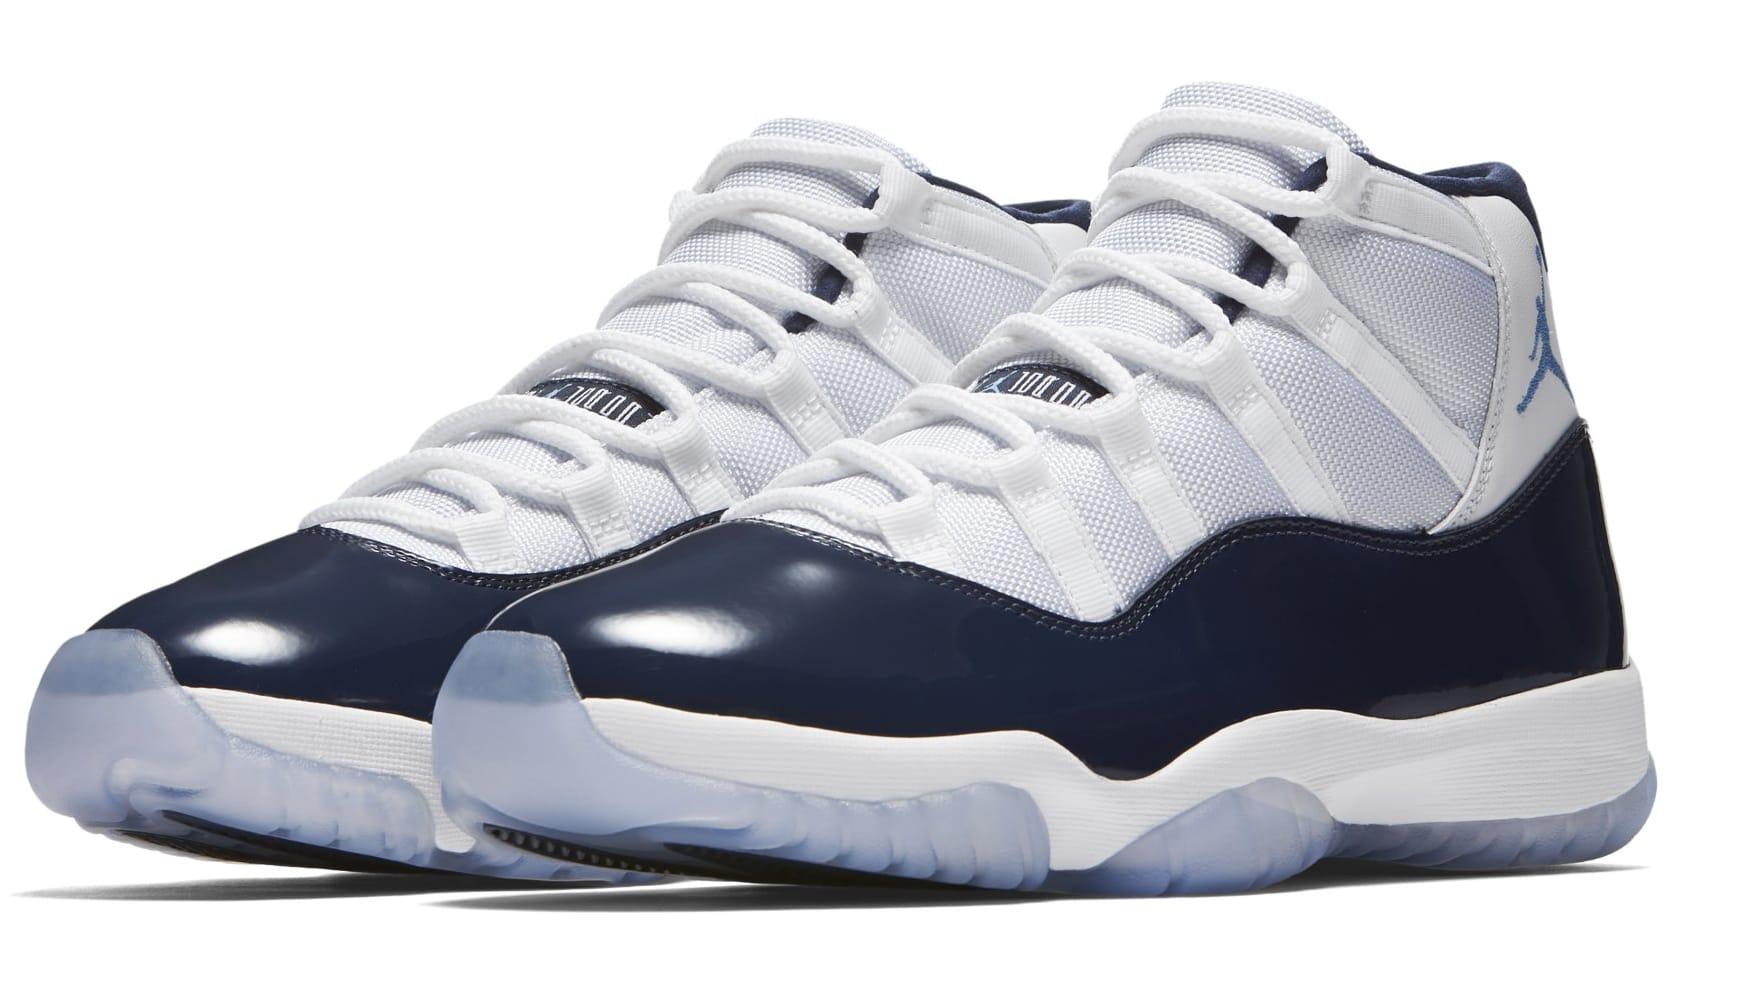 air jordan 11 retro bg win like 82 release